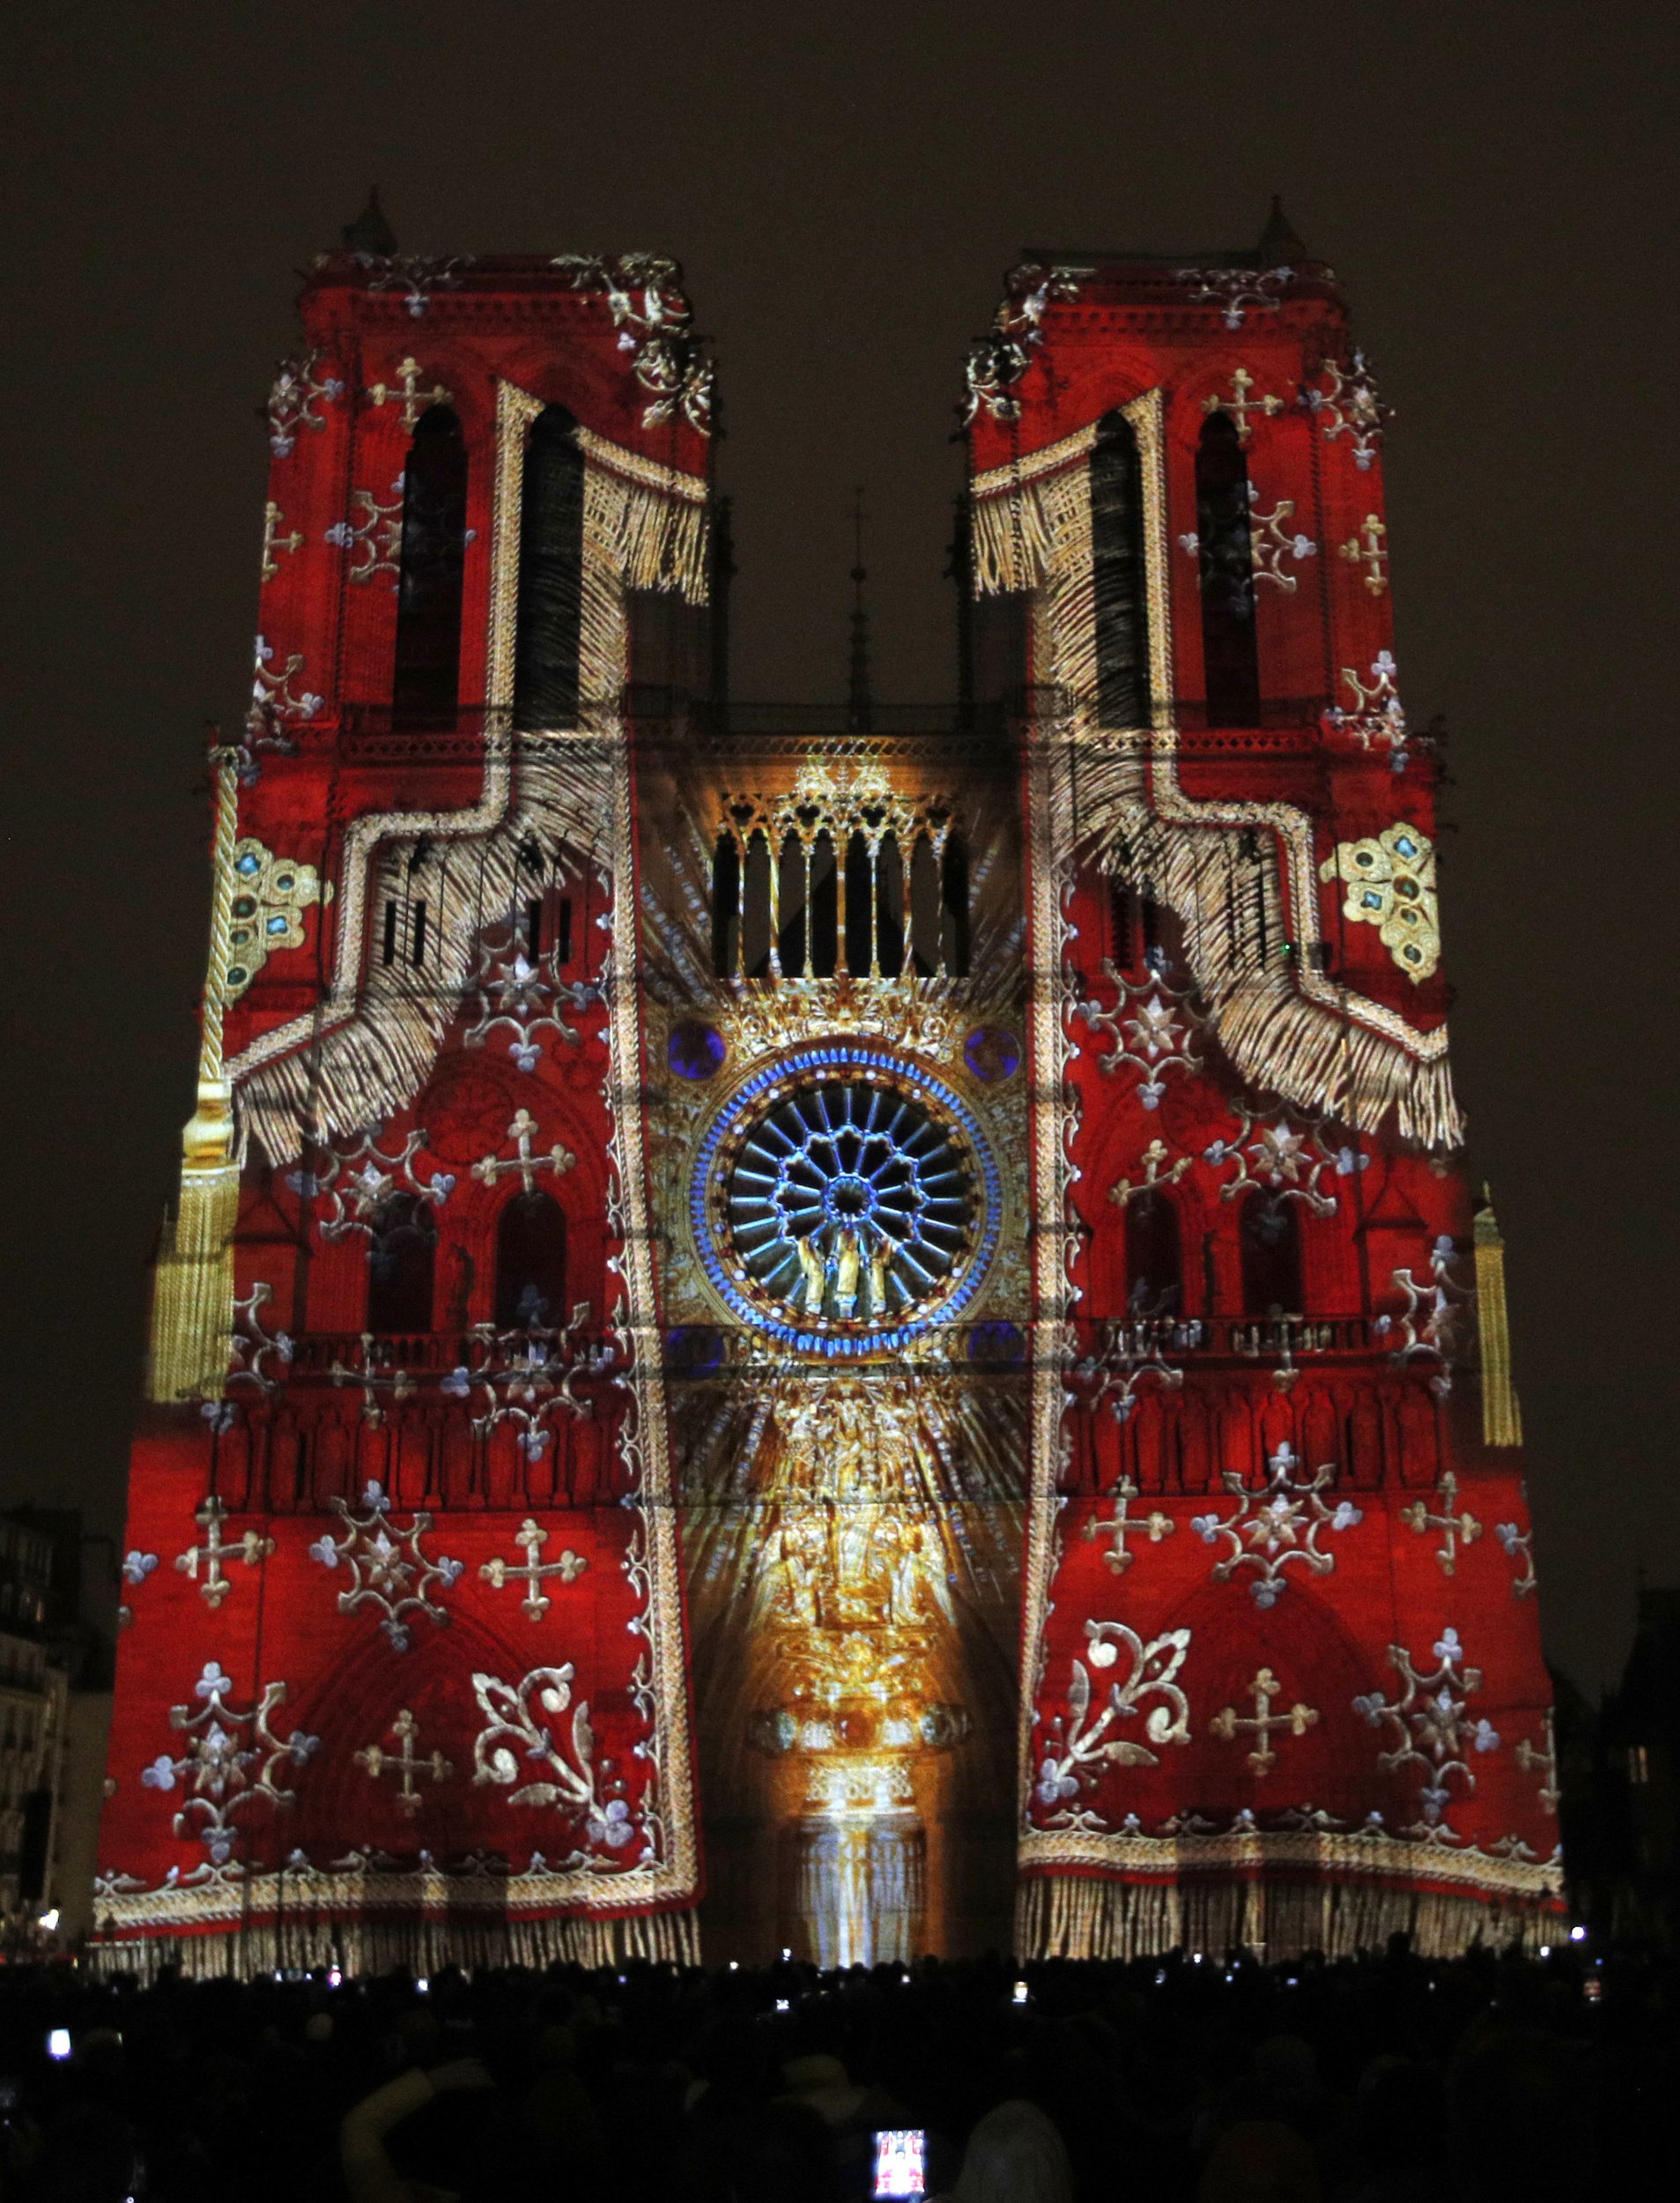 Image: The Notre Dame cathedral is illuminated during a light show called